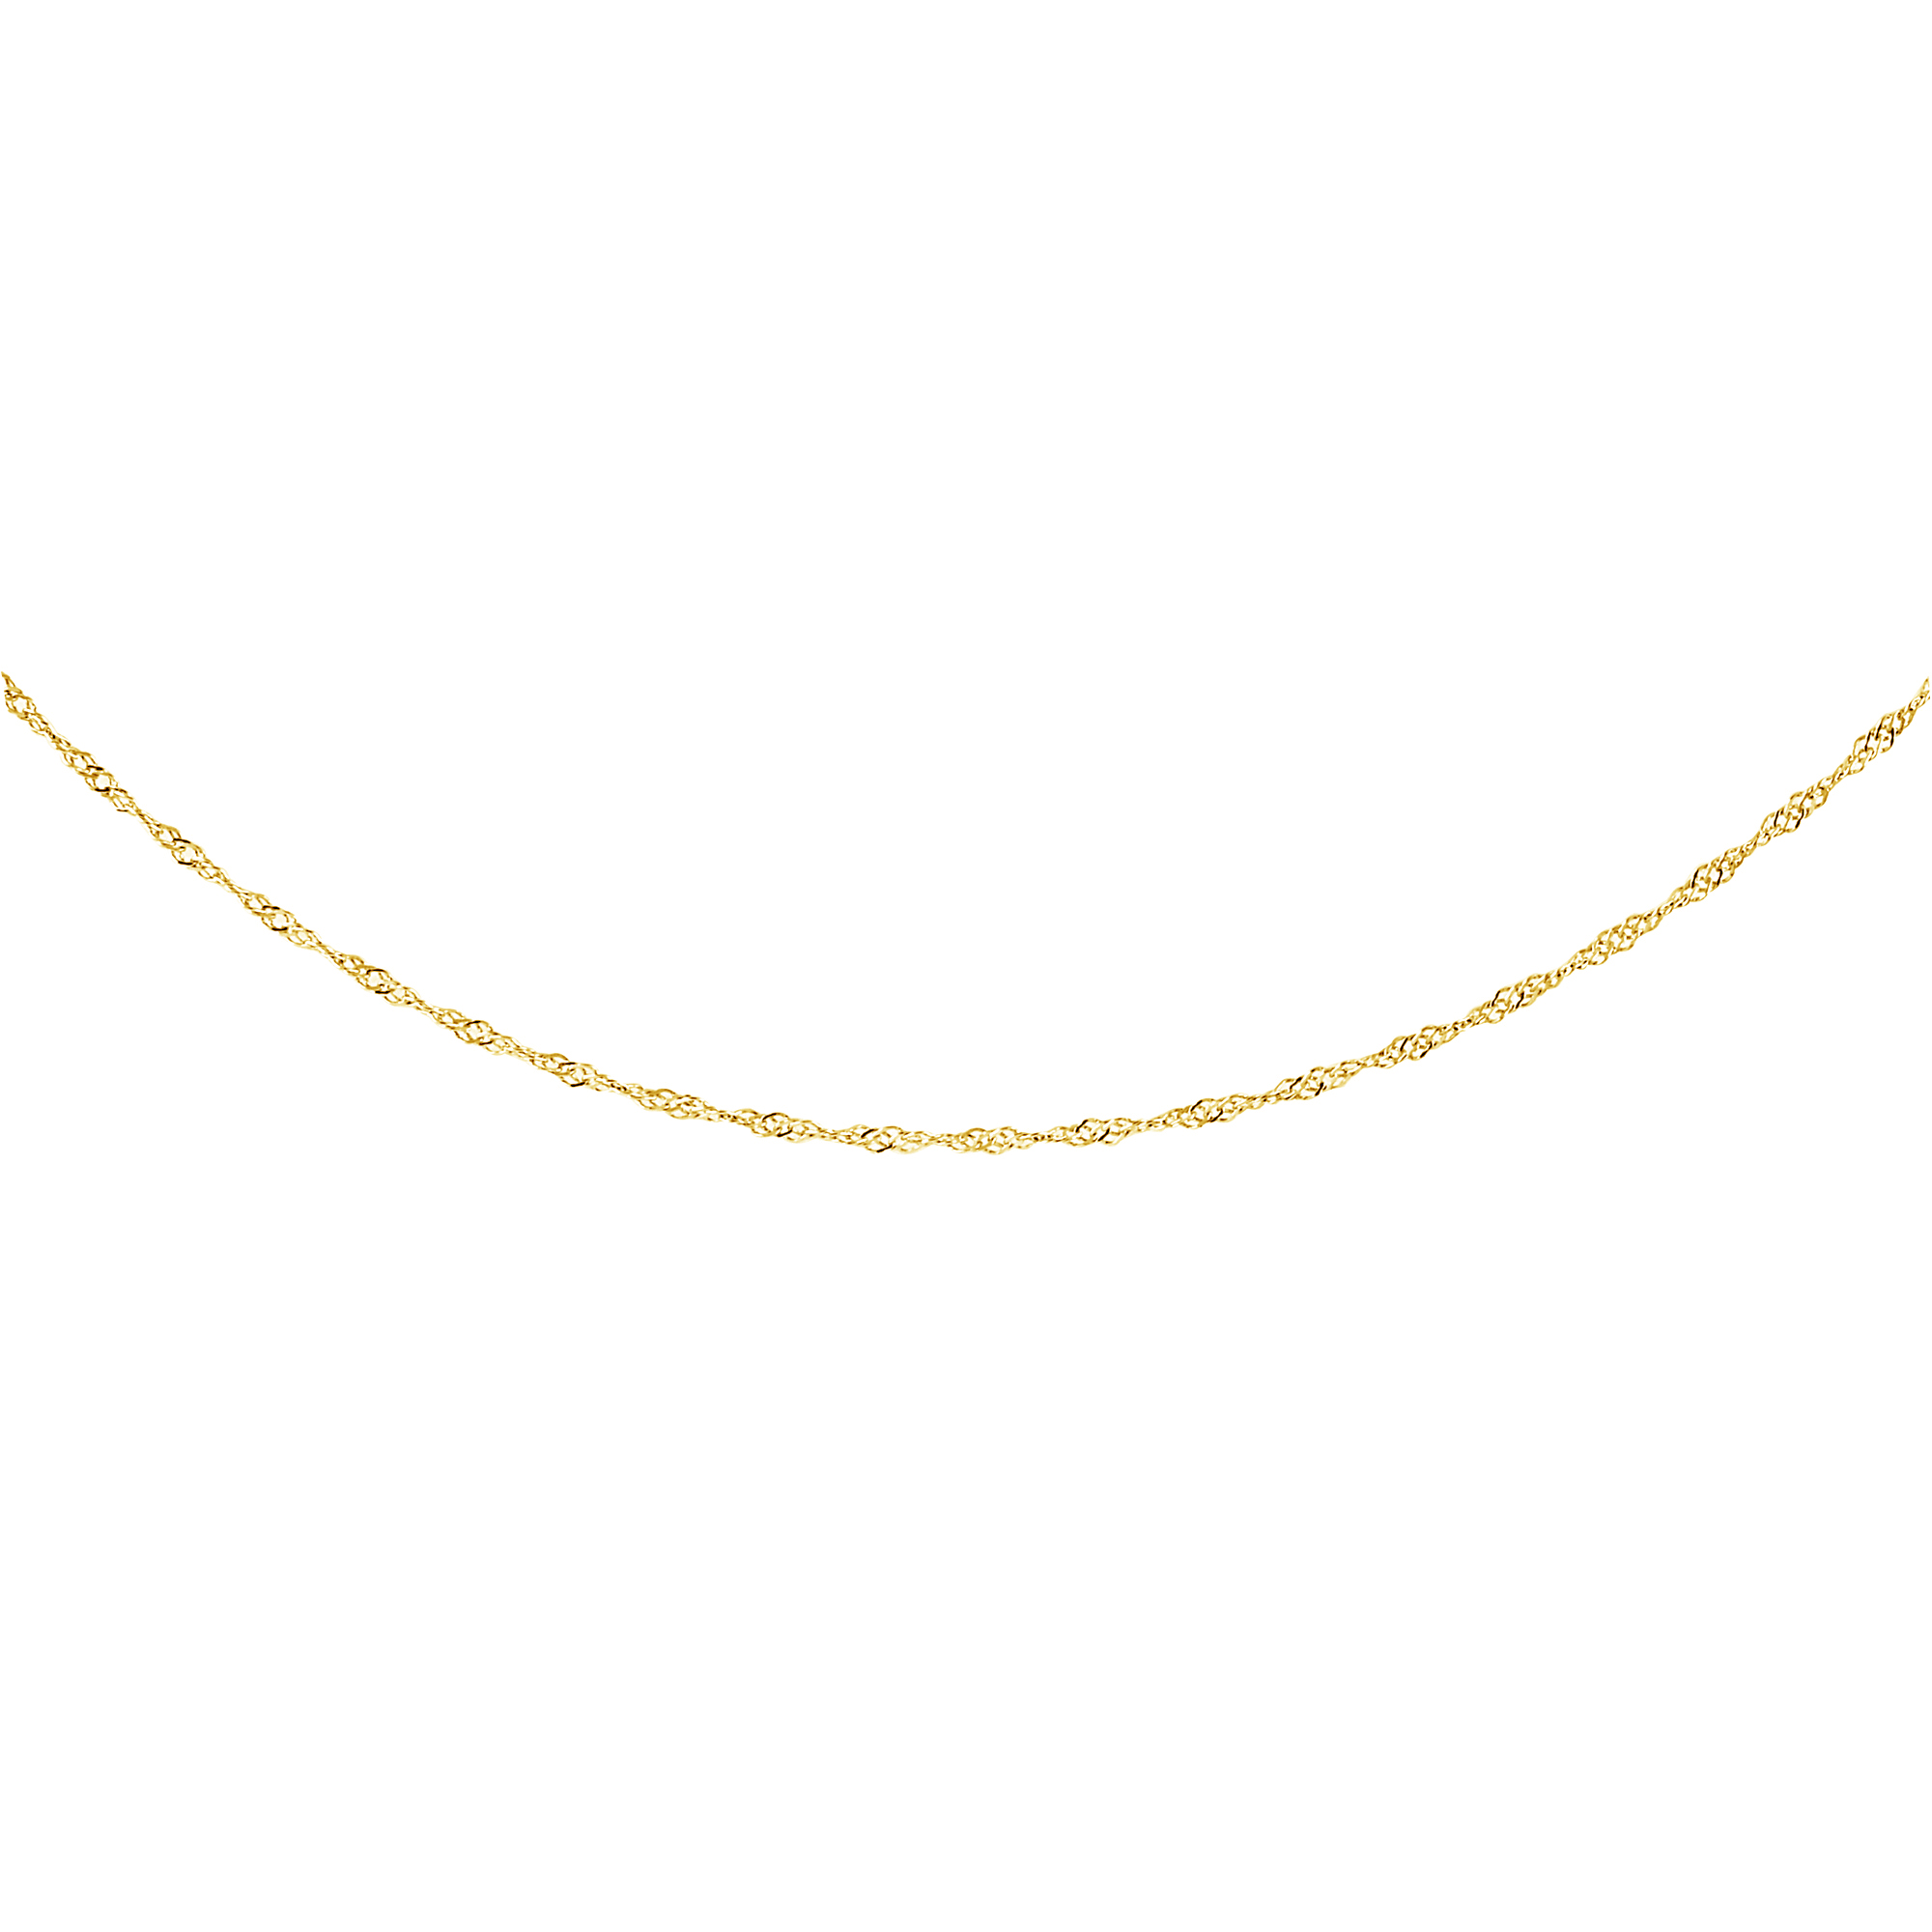 12'' Singapore chain for babies - 10K yellow Gold